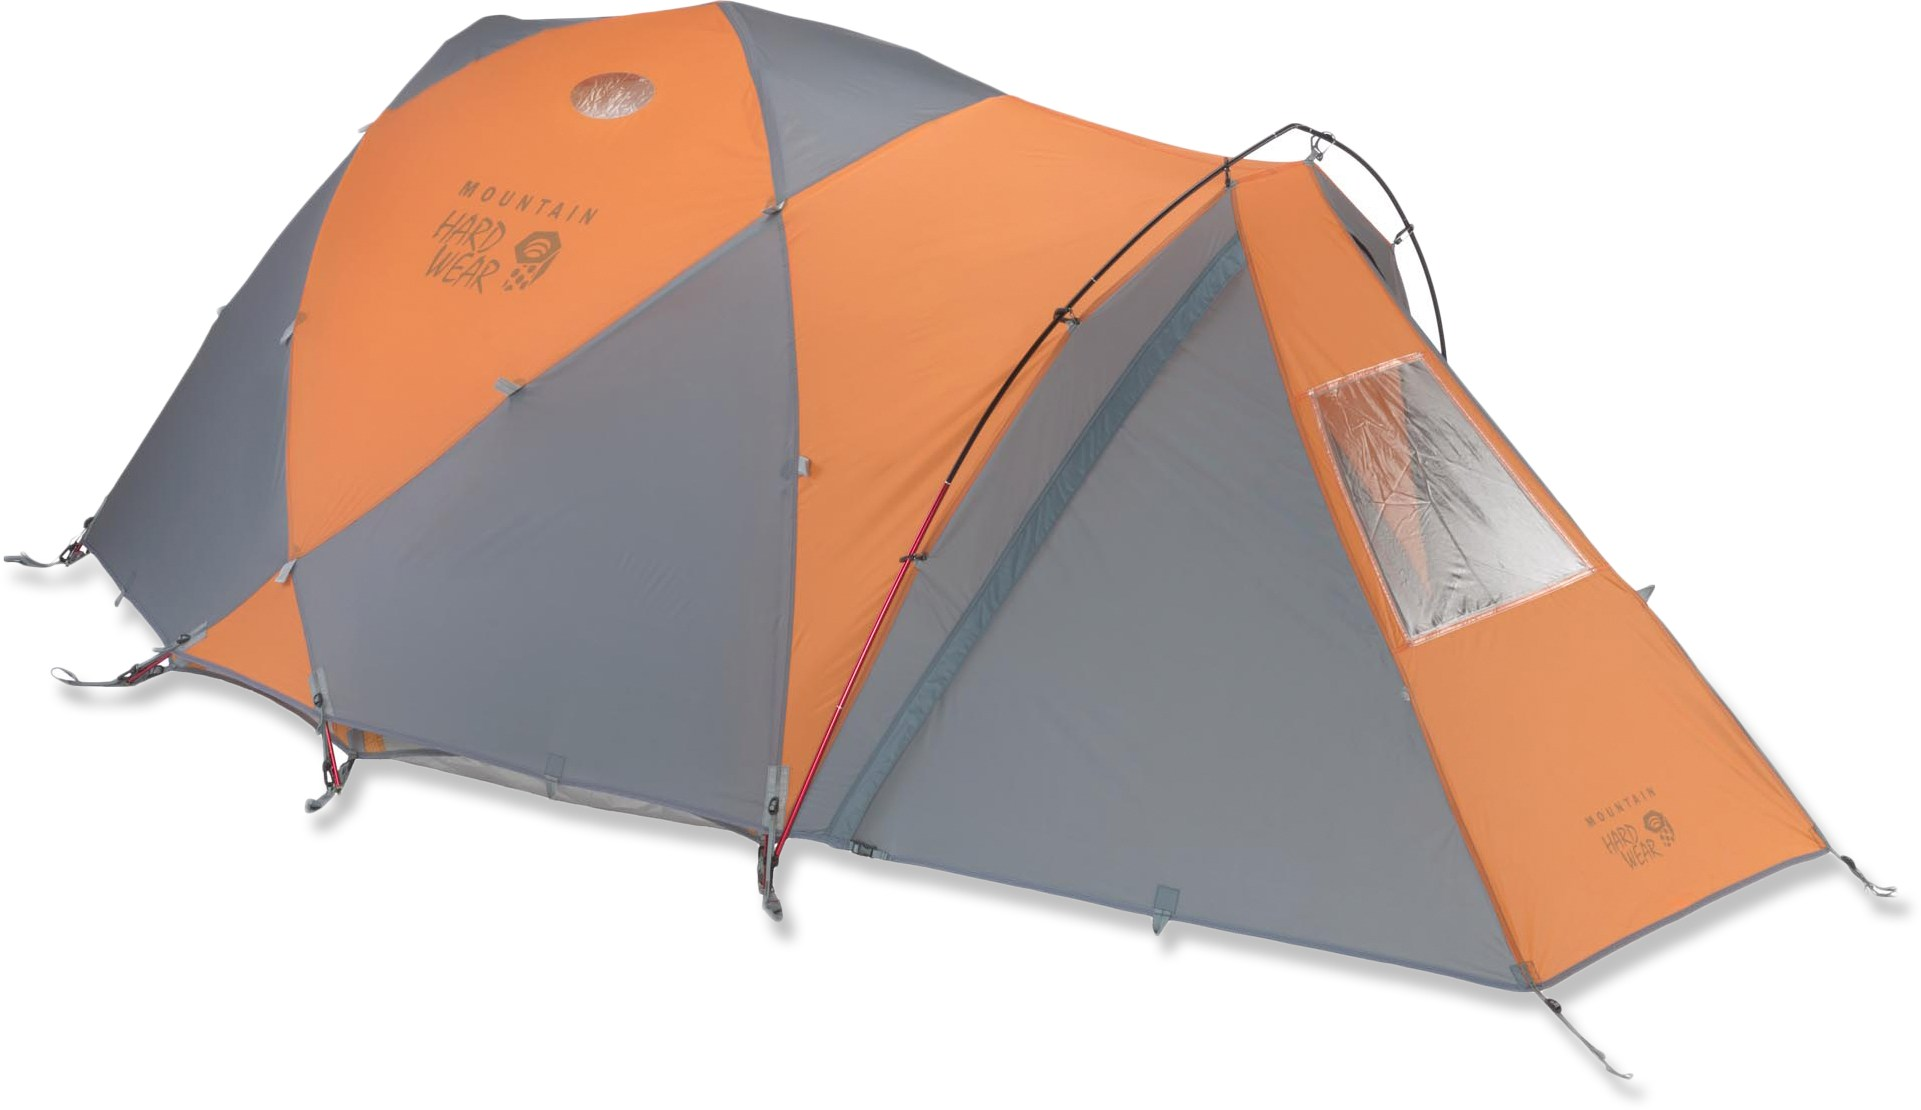 ... Trango 2 fly  sc 1 st  trinity design collaborative - WordPress.com & Mountain Hardwear Equipment Tent design and development | trinity ...